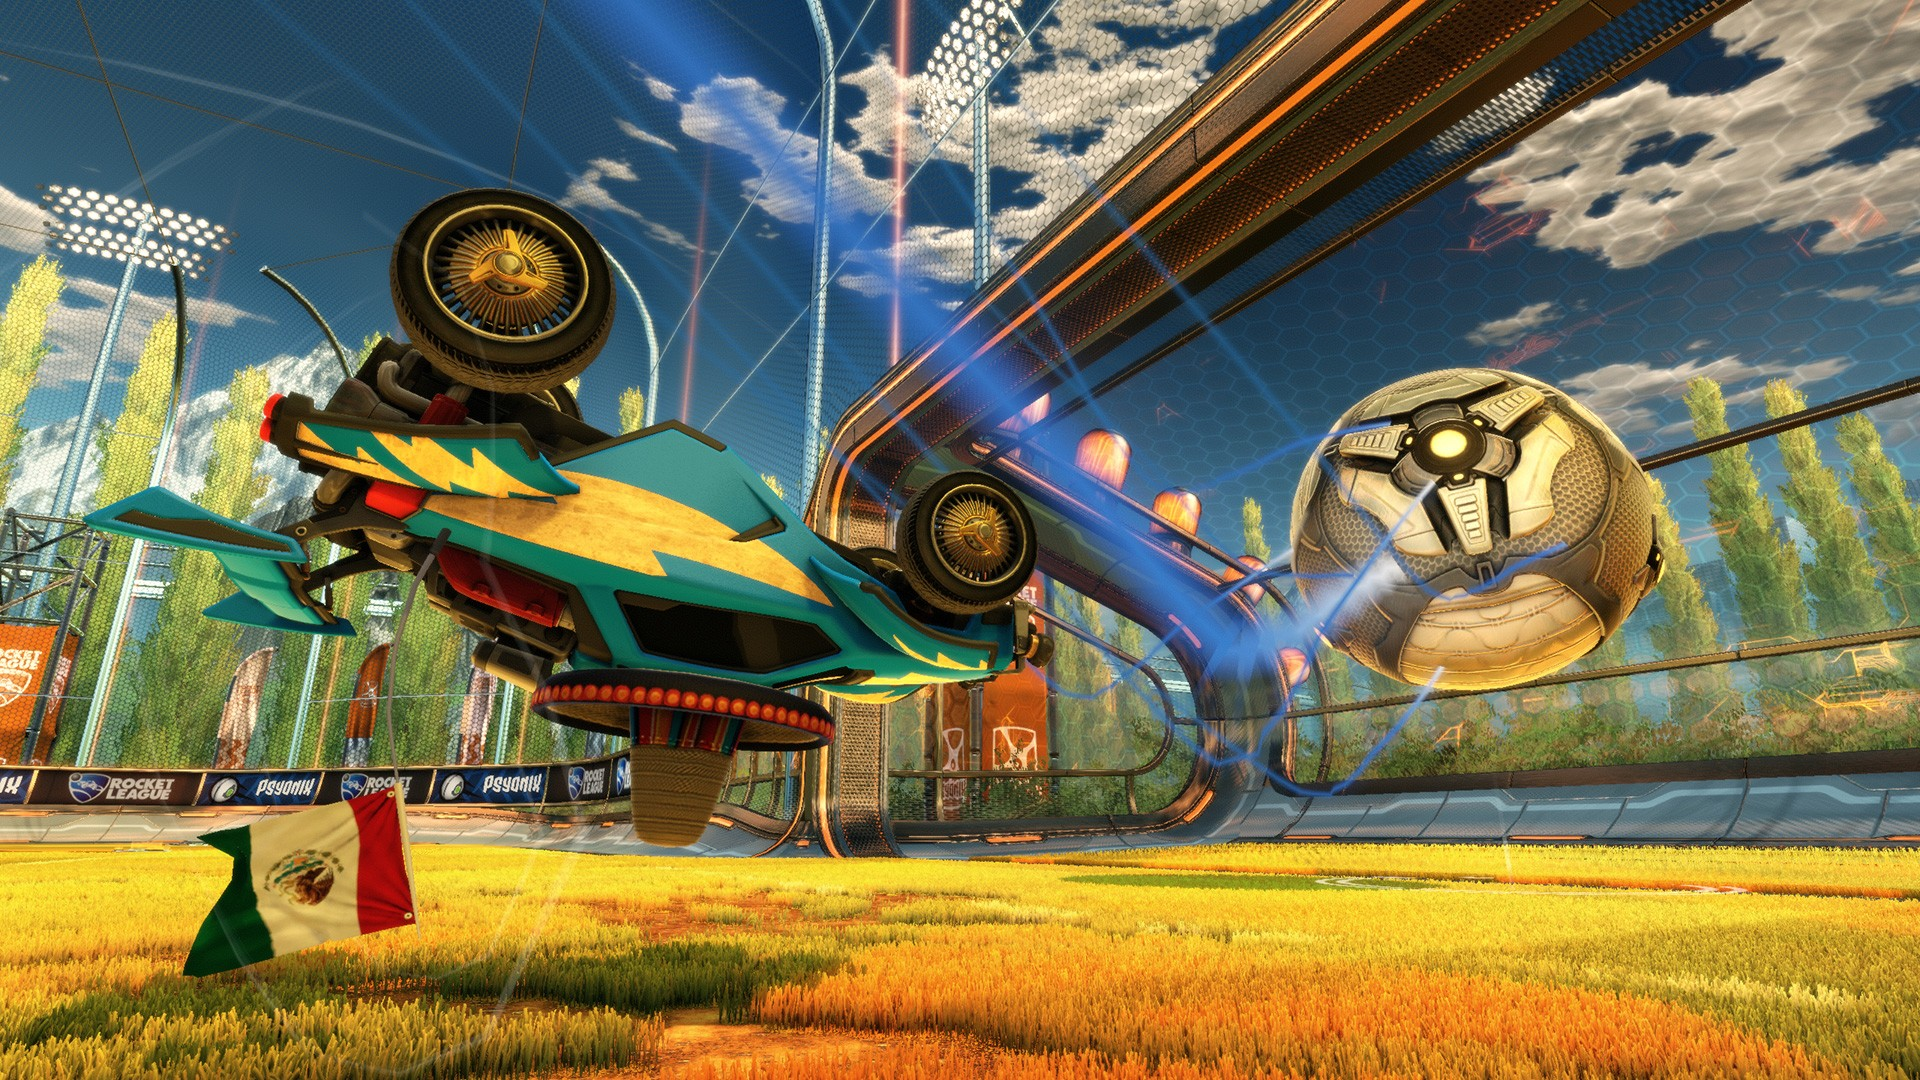 Rocket League (Nintendo Switch, PC, PS4, XBOX ONE) 670-3